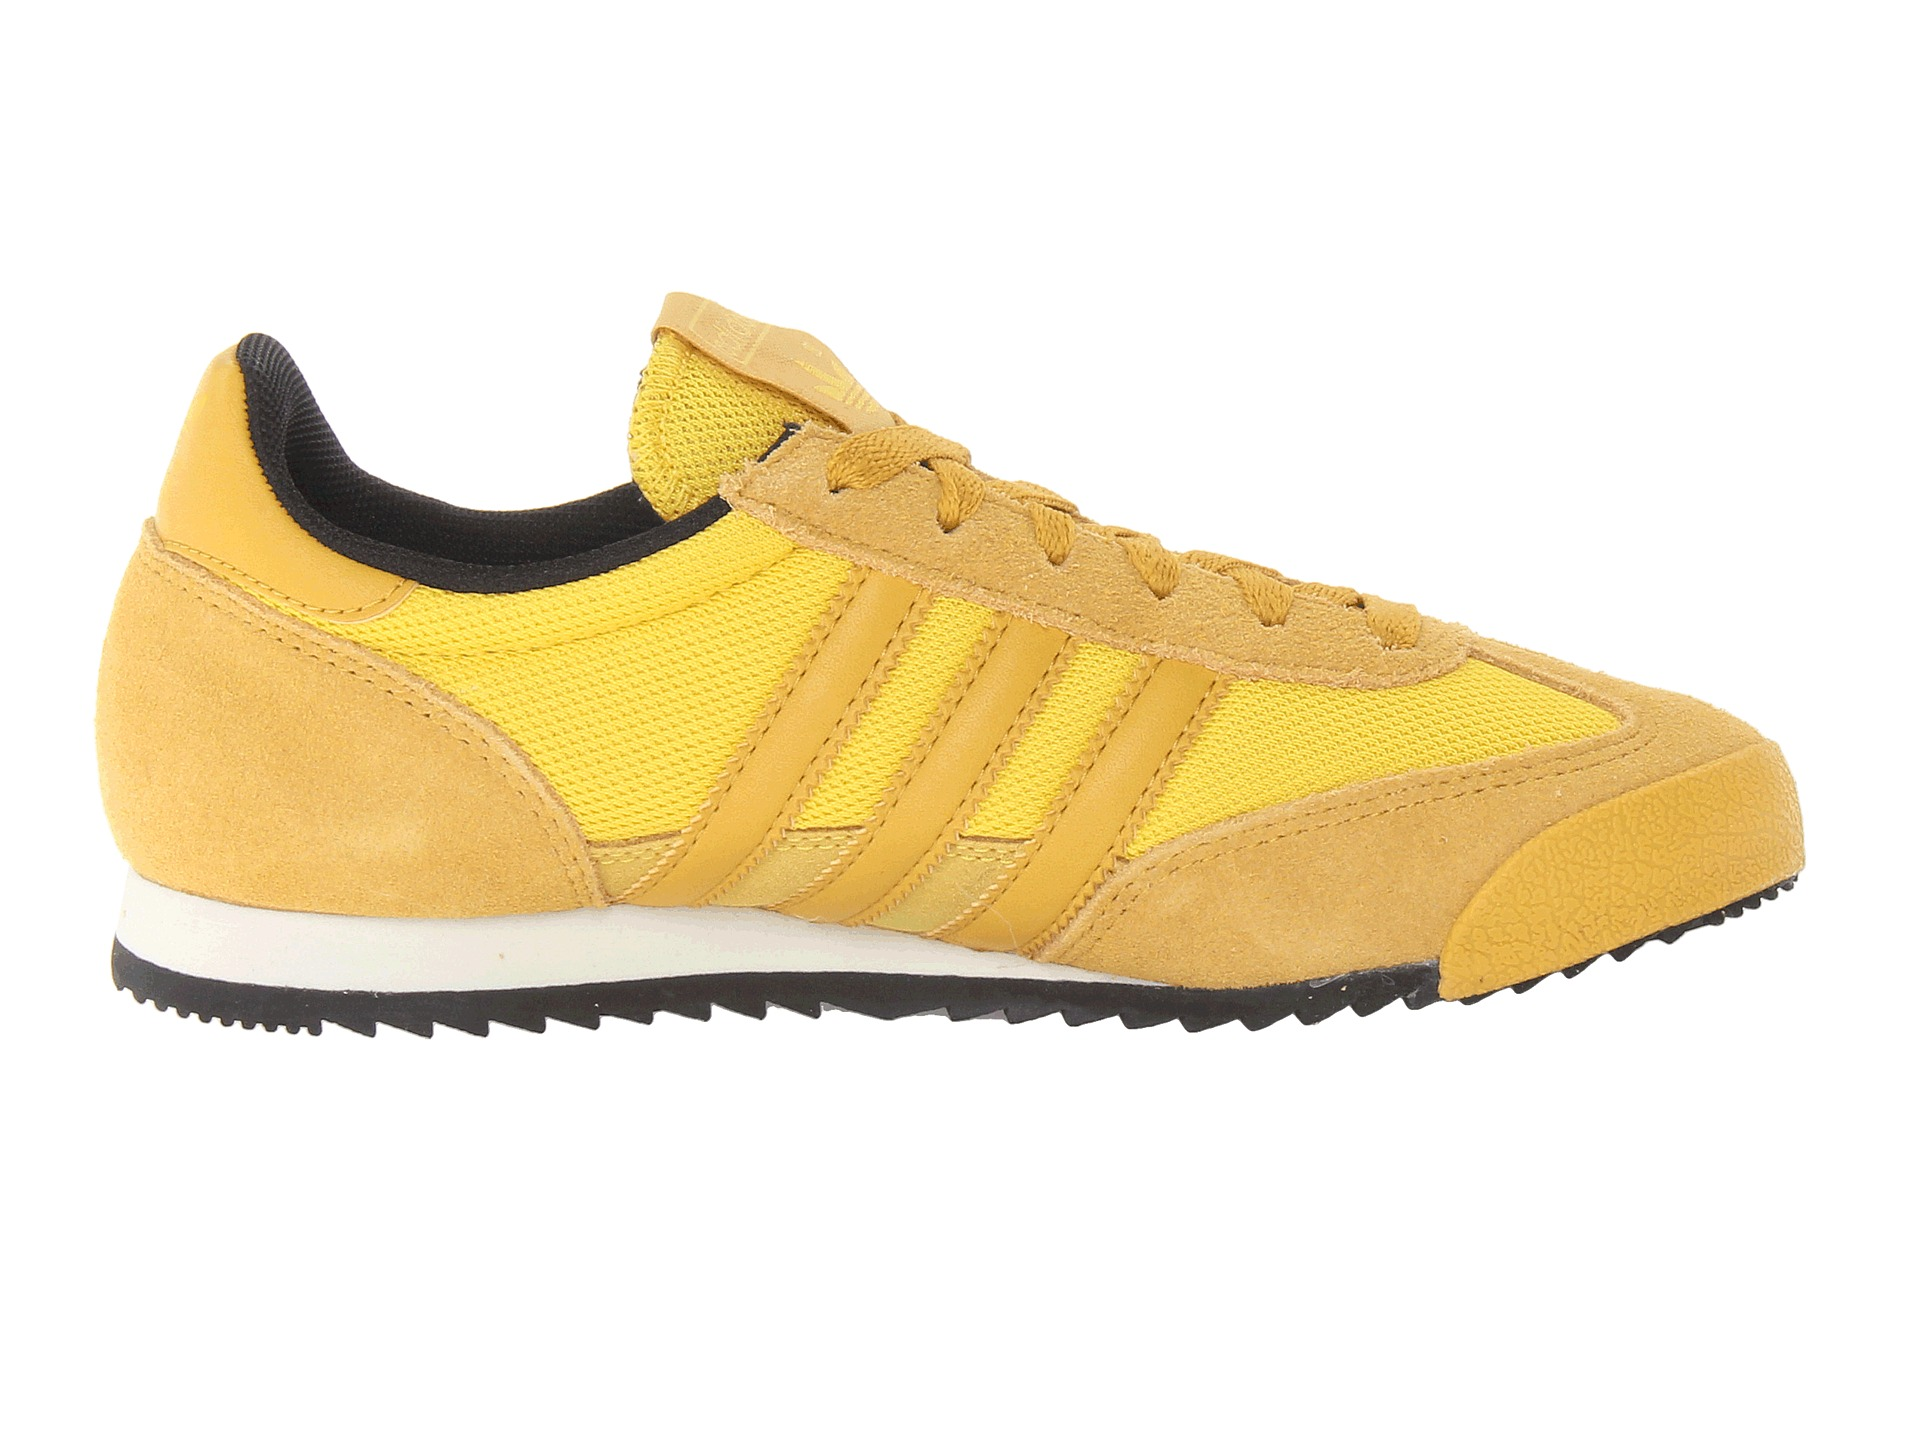 ca197d44eeef adidas Originals Dragon Tribe Yellow Nomad Yellow White Vapor on ...